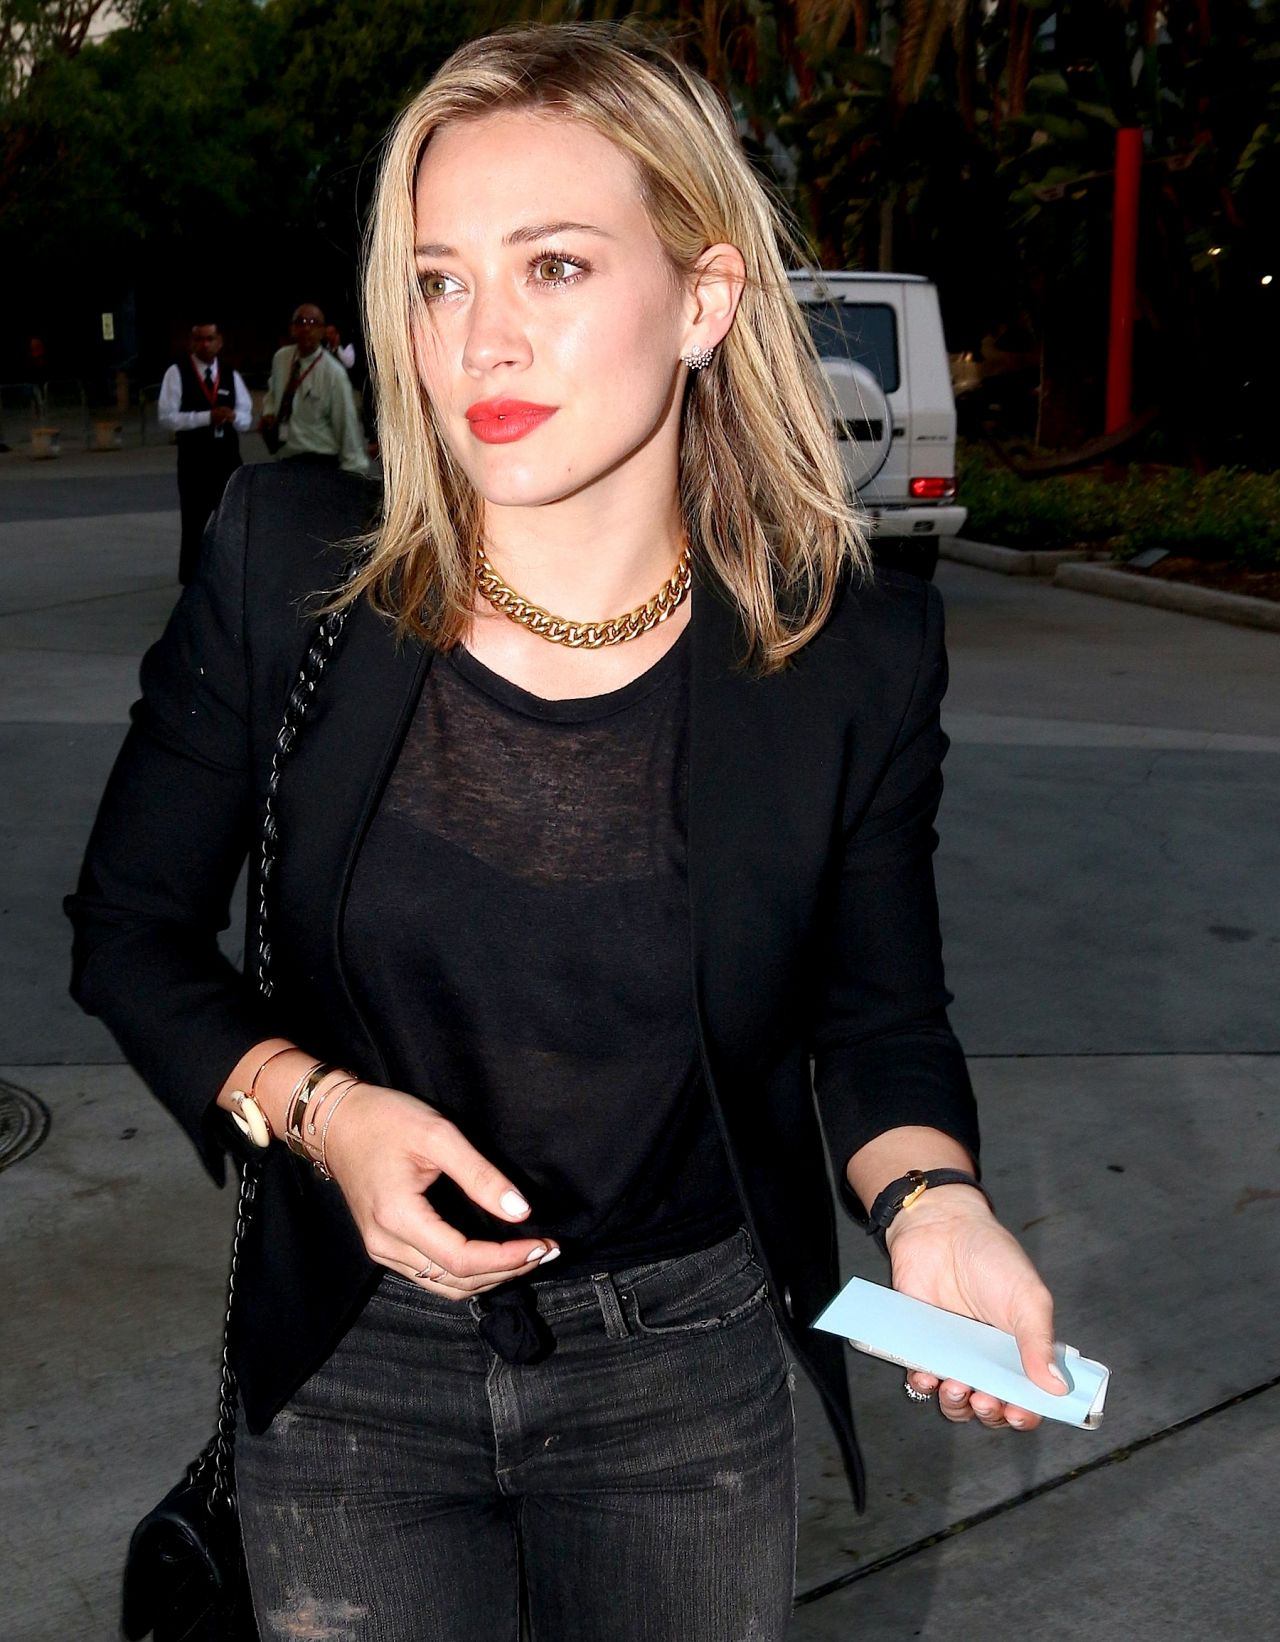 Hilary Duff at Staples Center in Los Angeles - July 2014